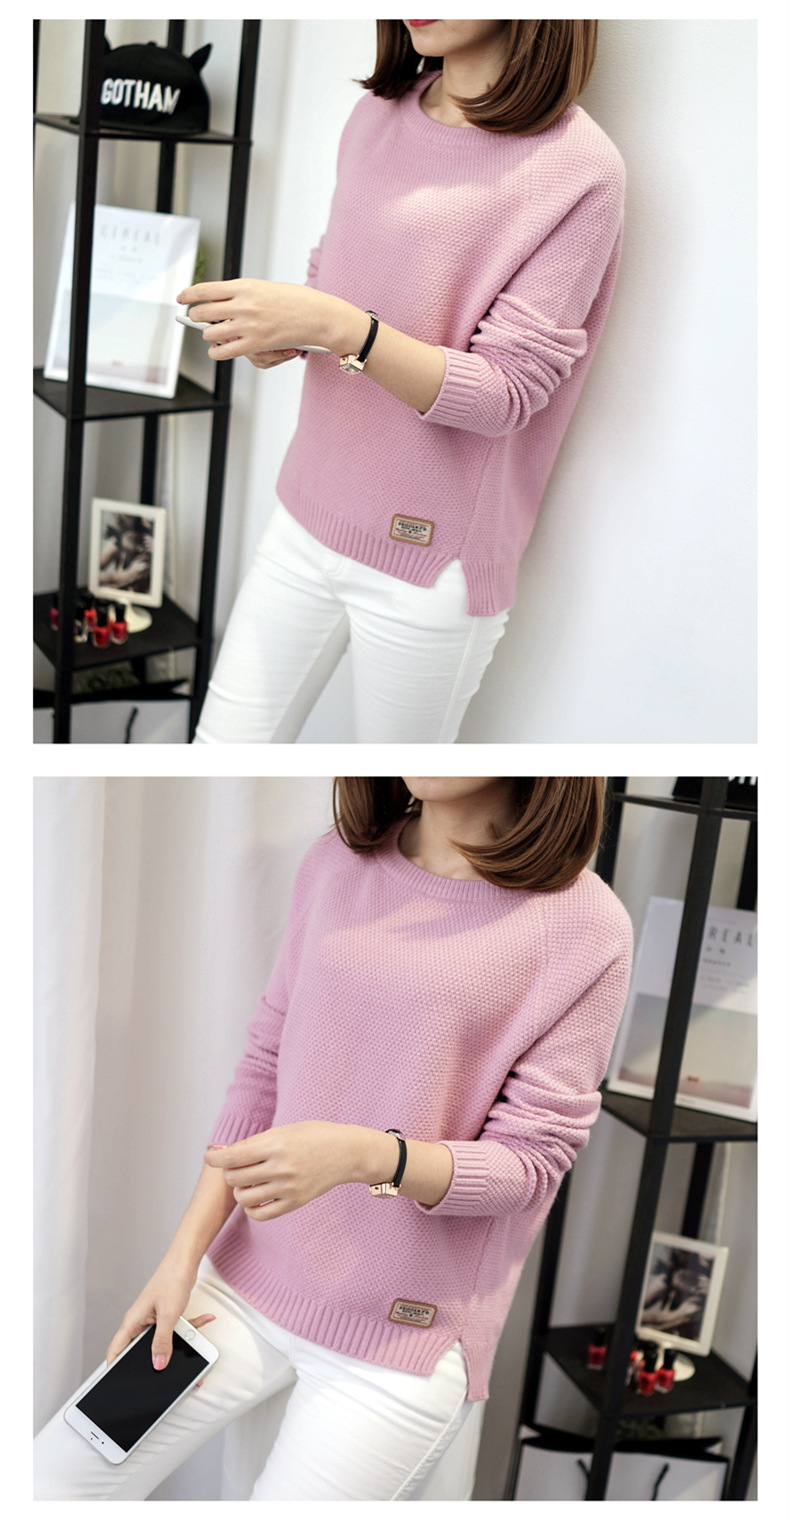 Autumn sweater 19 Winter women fashion sexy o-neck Casual women sweaters and pullover warm Long sleeve Knitted Sweater 8